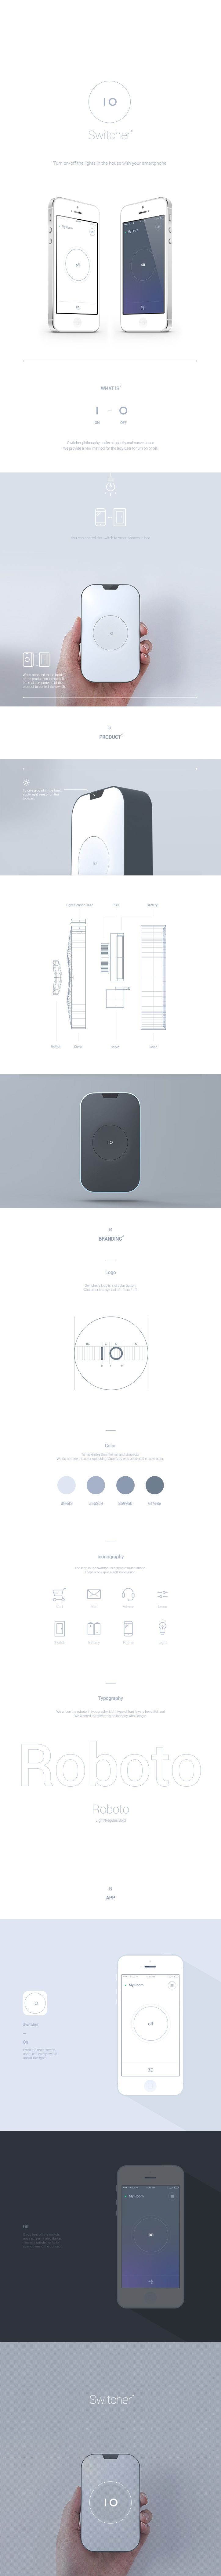 Product / Branding / UX Design for Switcher.